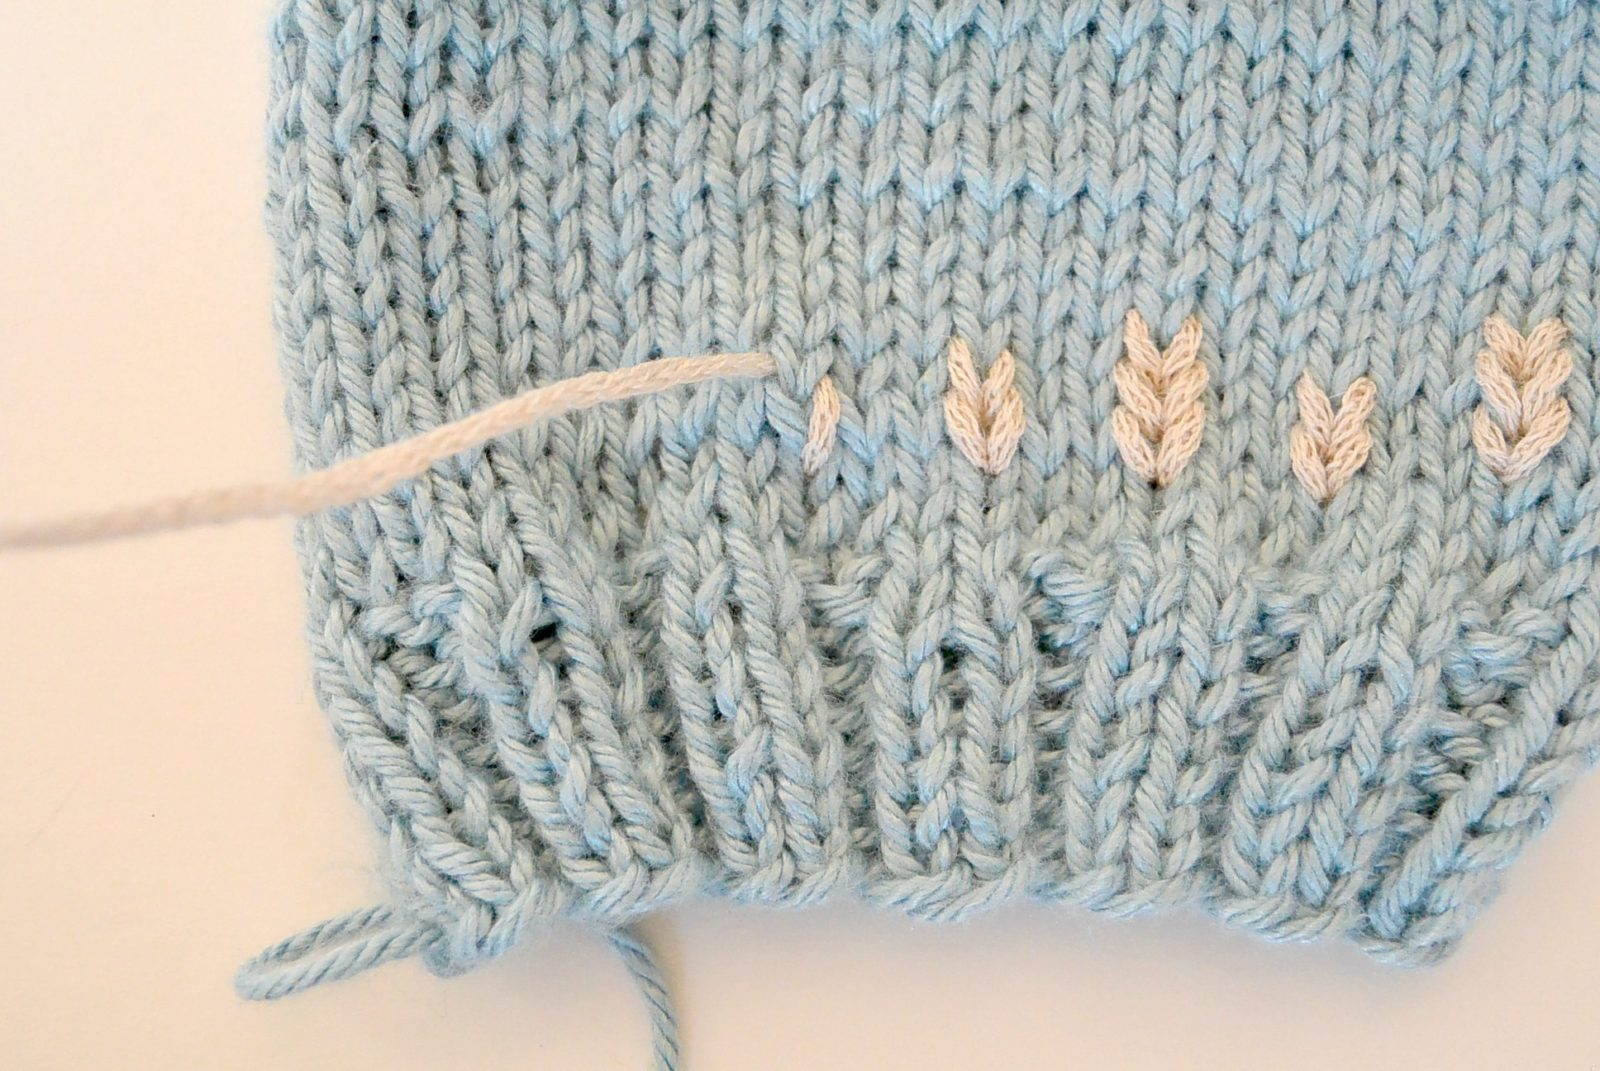 Embroidery Stitch In Knitting : Embroider on Knit Tutorial   Duplicate Stitch